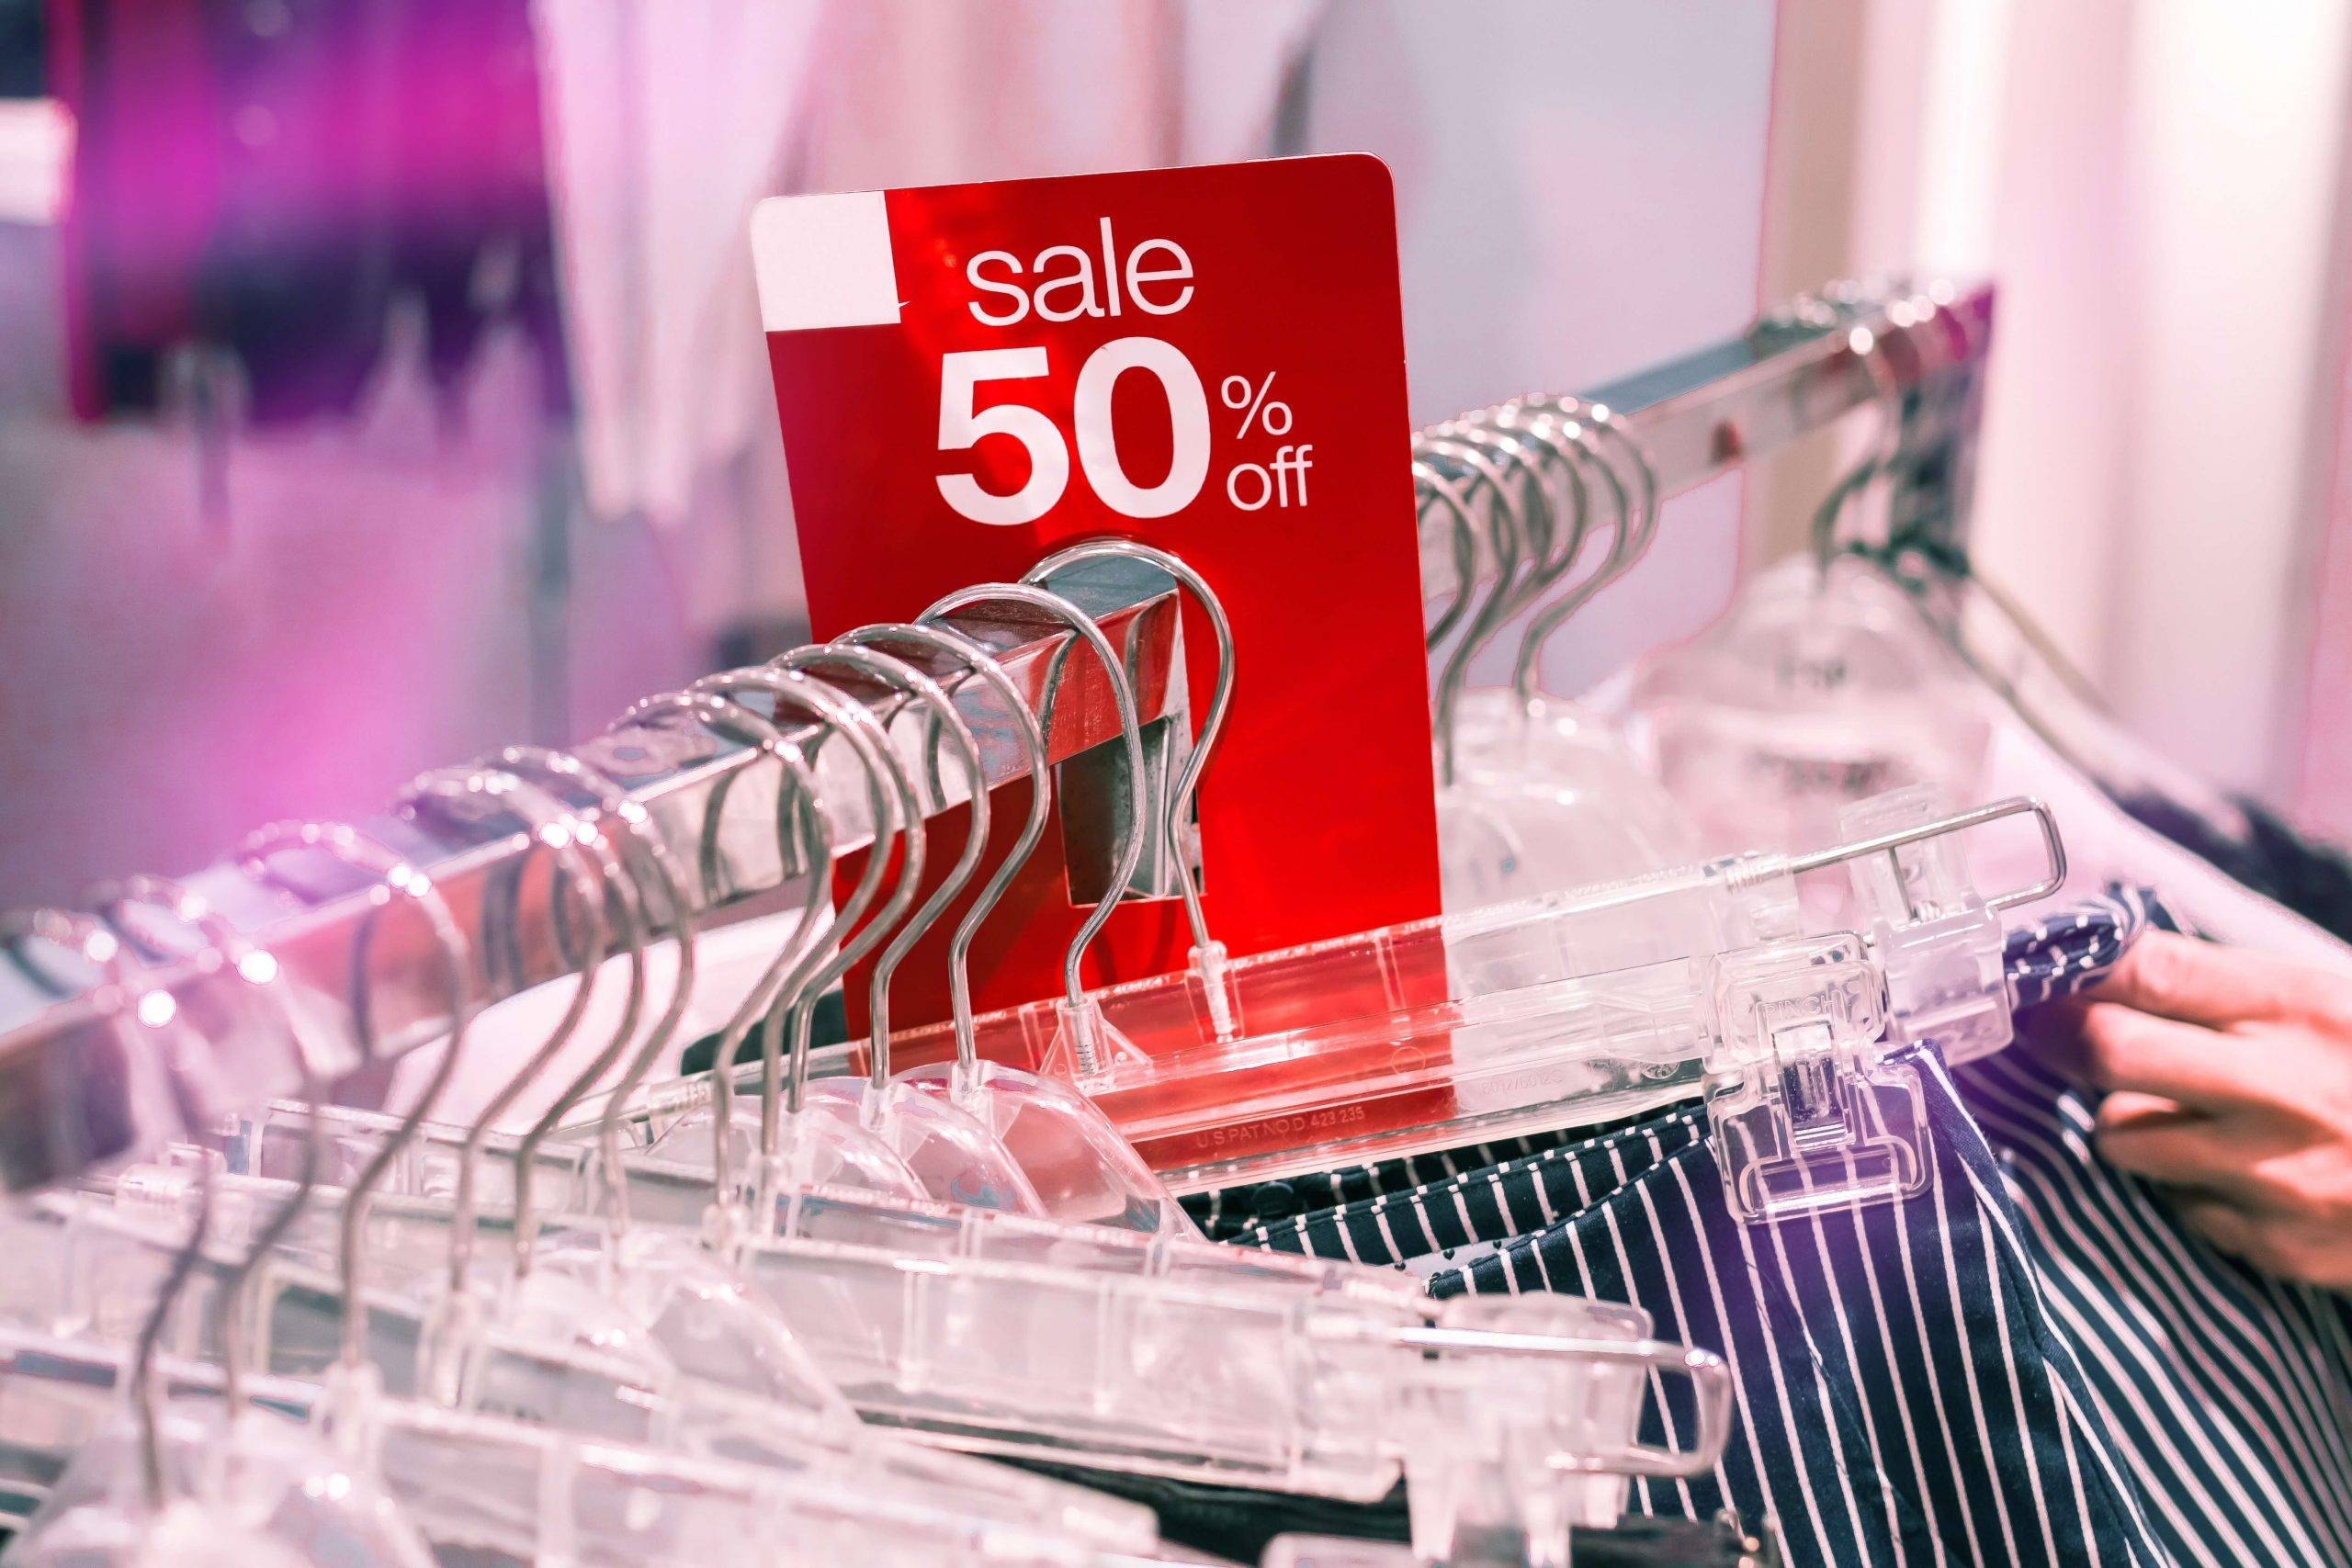 How to Perform Retail Markdowns